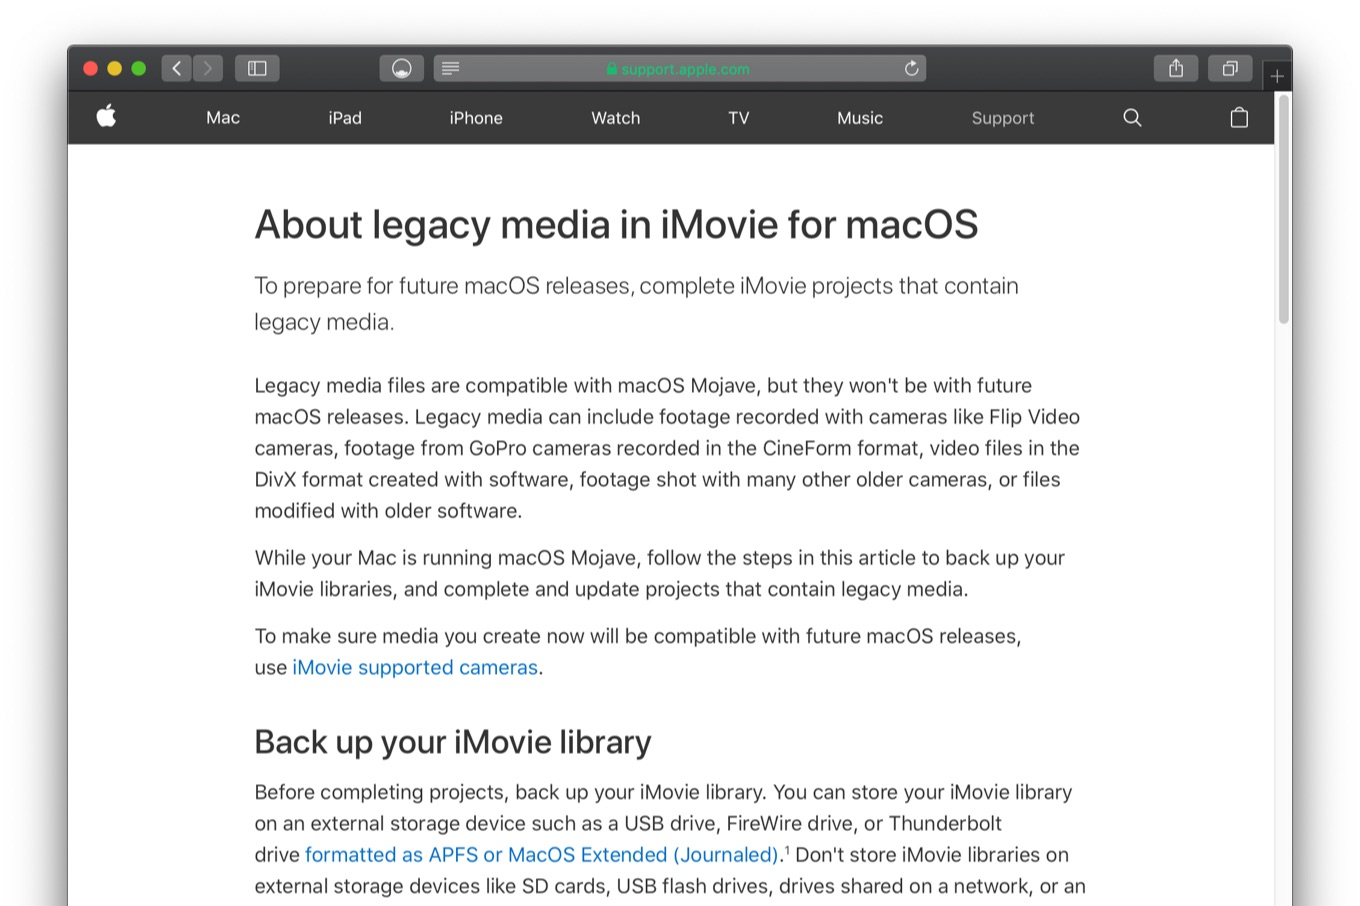 About legacy media in iMovie for macOS